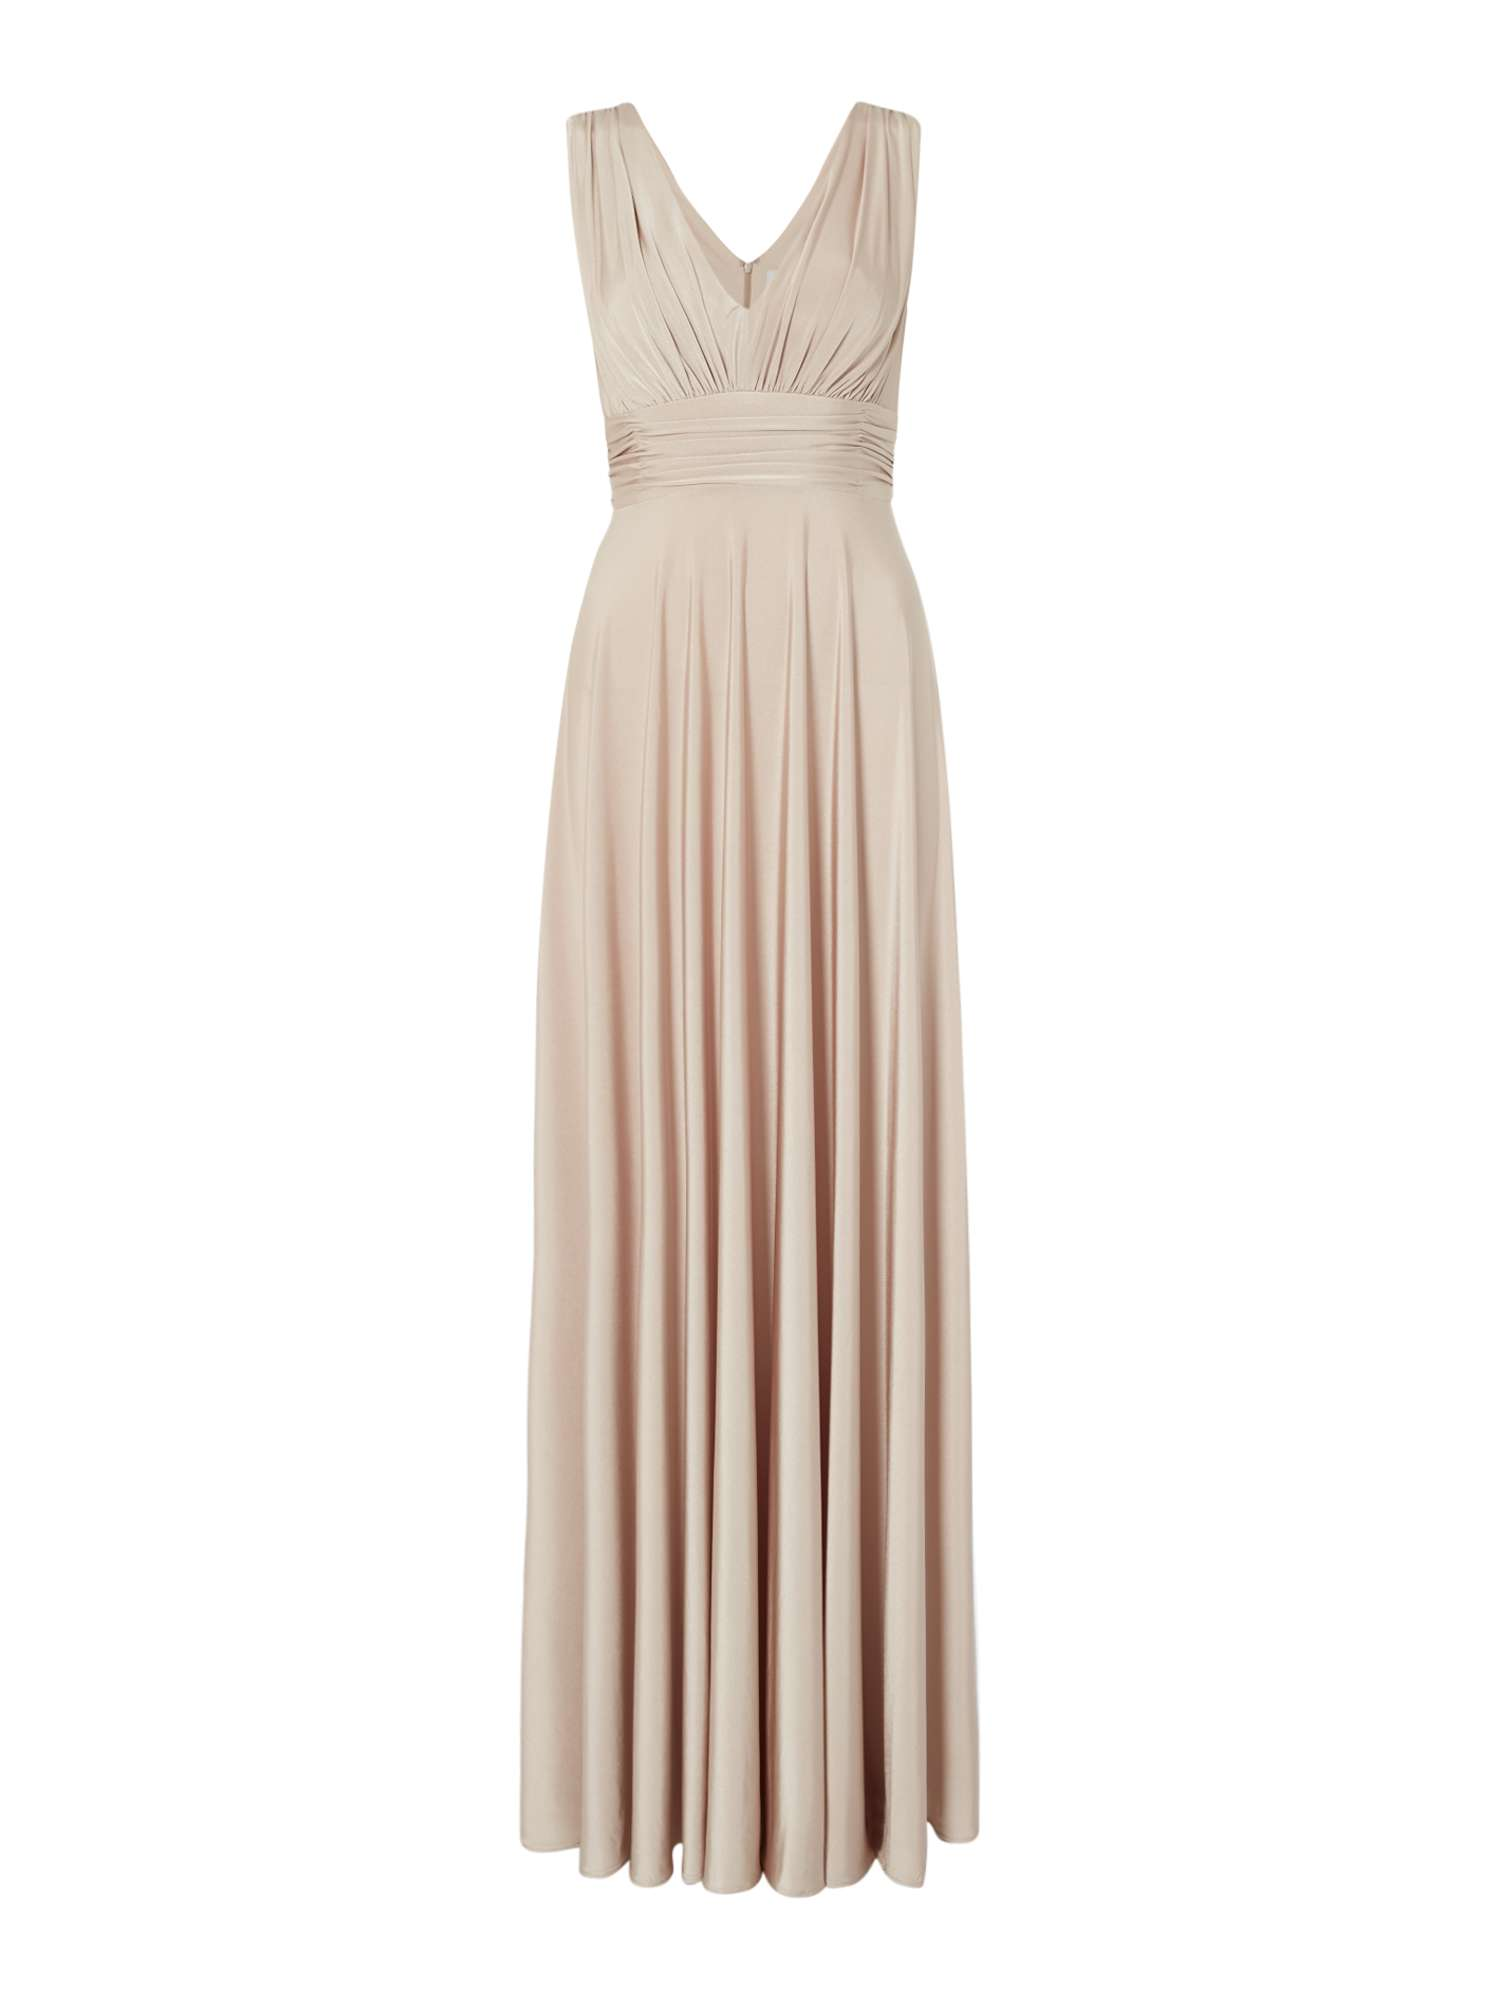 Bridesmaid Dresses | Bridesmaid Dresses UK - House of Fraser